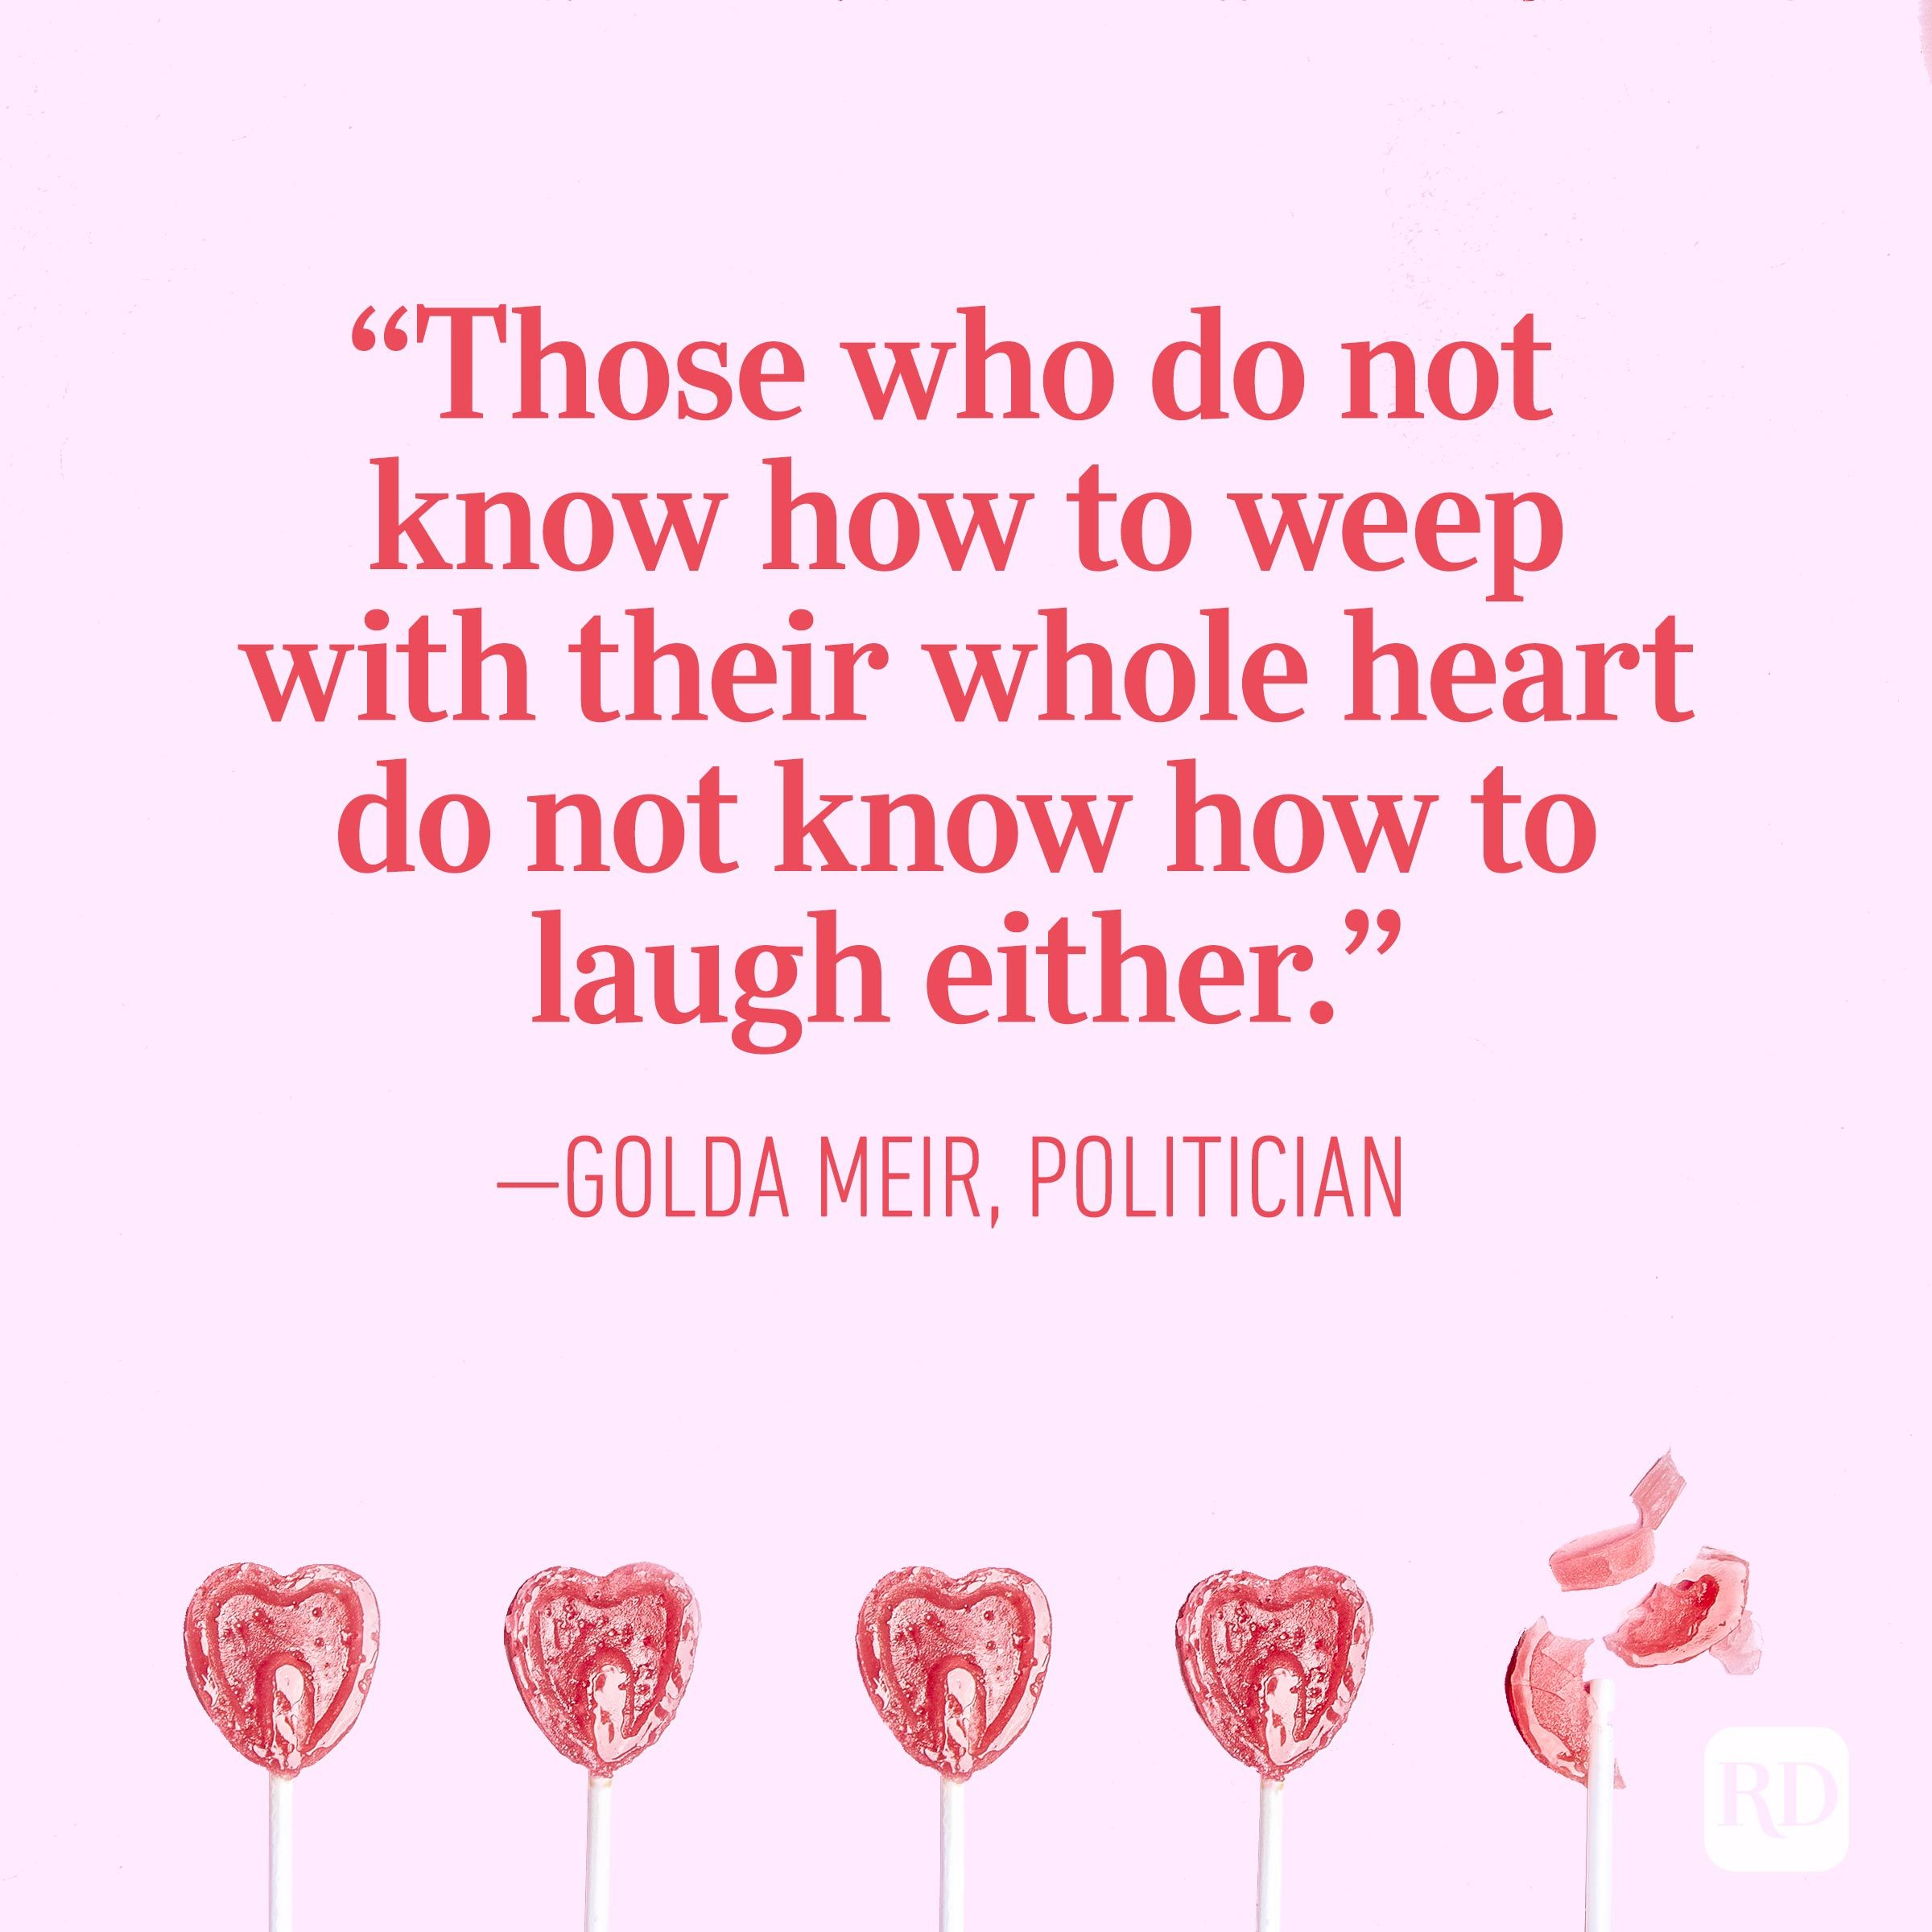 """Those who do not know how to weep with their whole heart do not know how to laugh either."" – Golda Meir, politician"